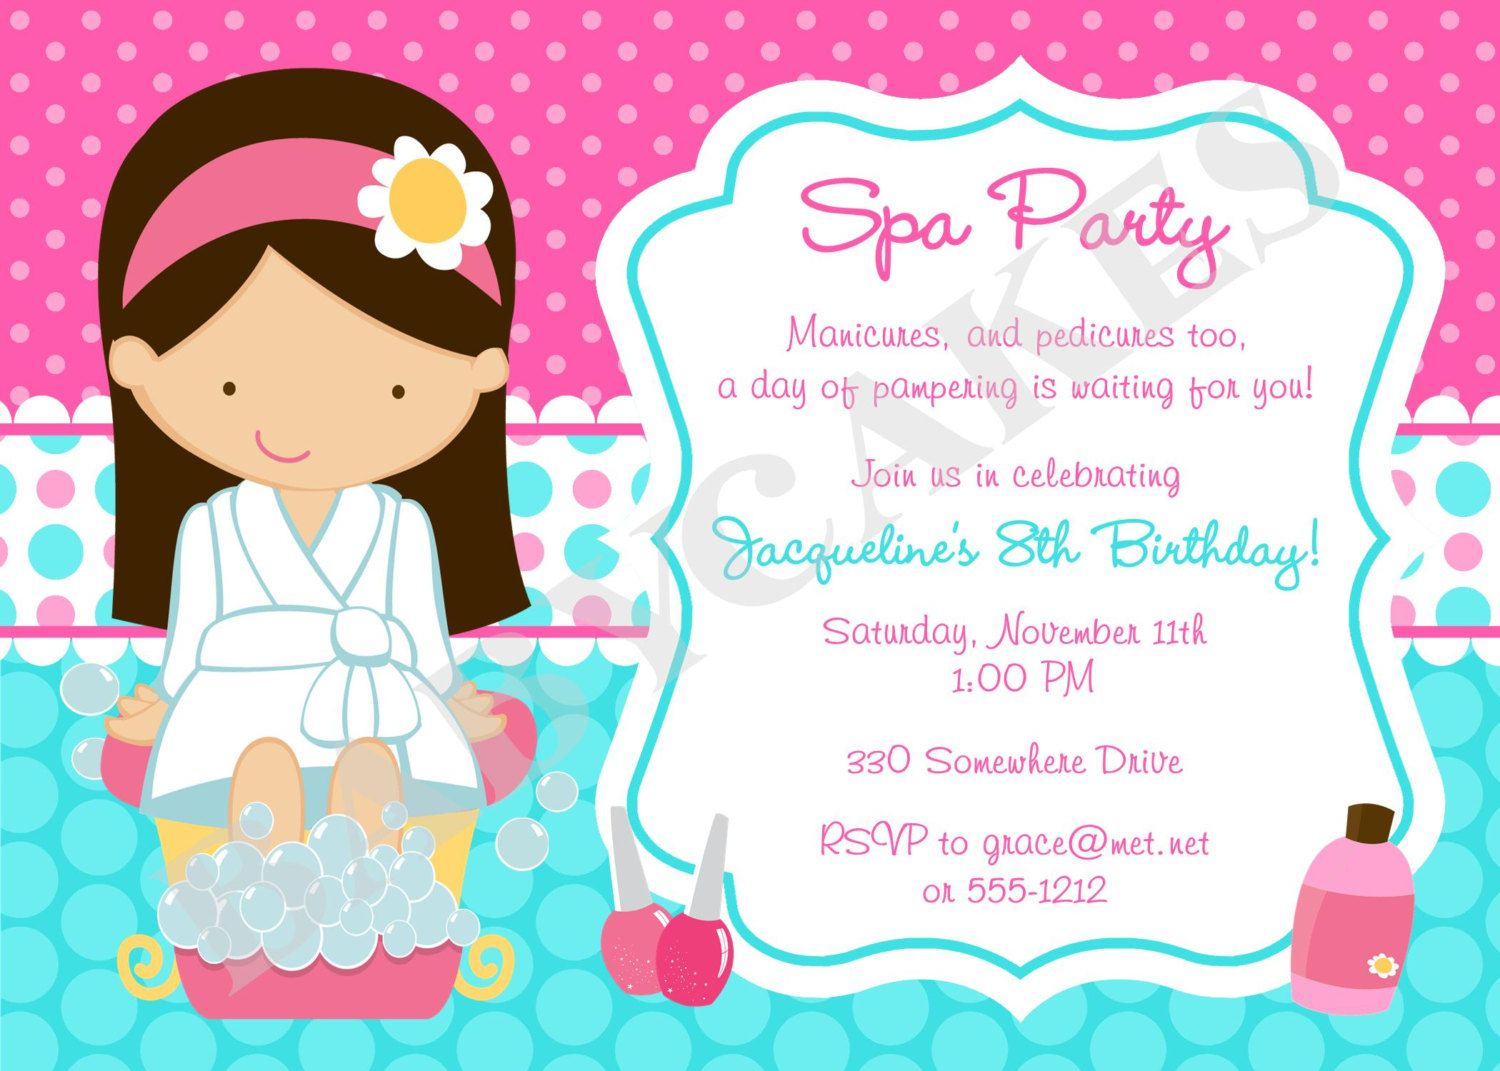 Spa Party Invitation - Spa Birthday Party - Spa invitation - Print ...